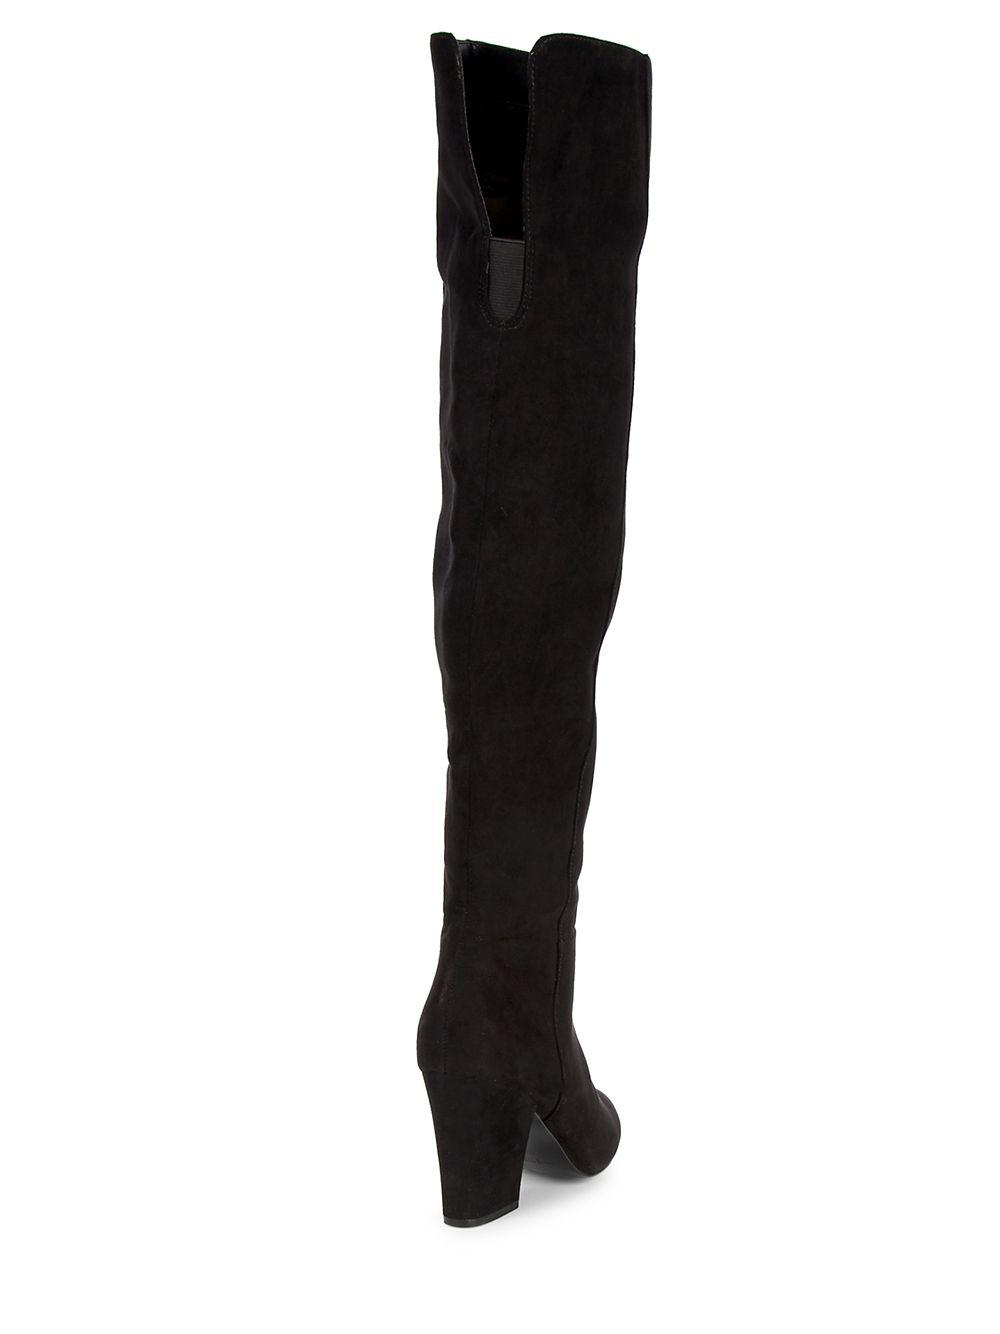 afabc5576e7 Nine West - Black Siventa Textile Over-the-knee Boots - Lyst. View  fullscreen